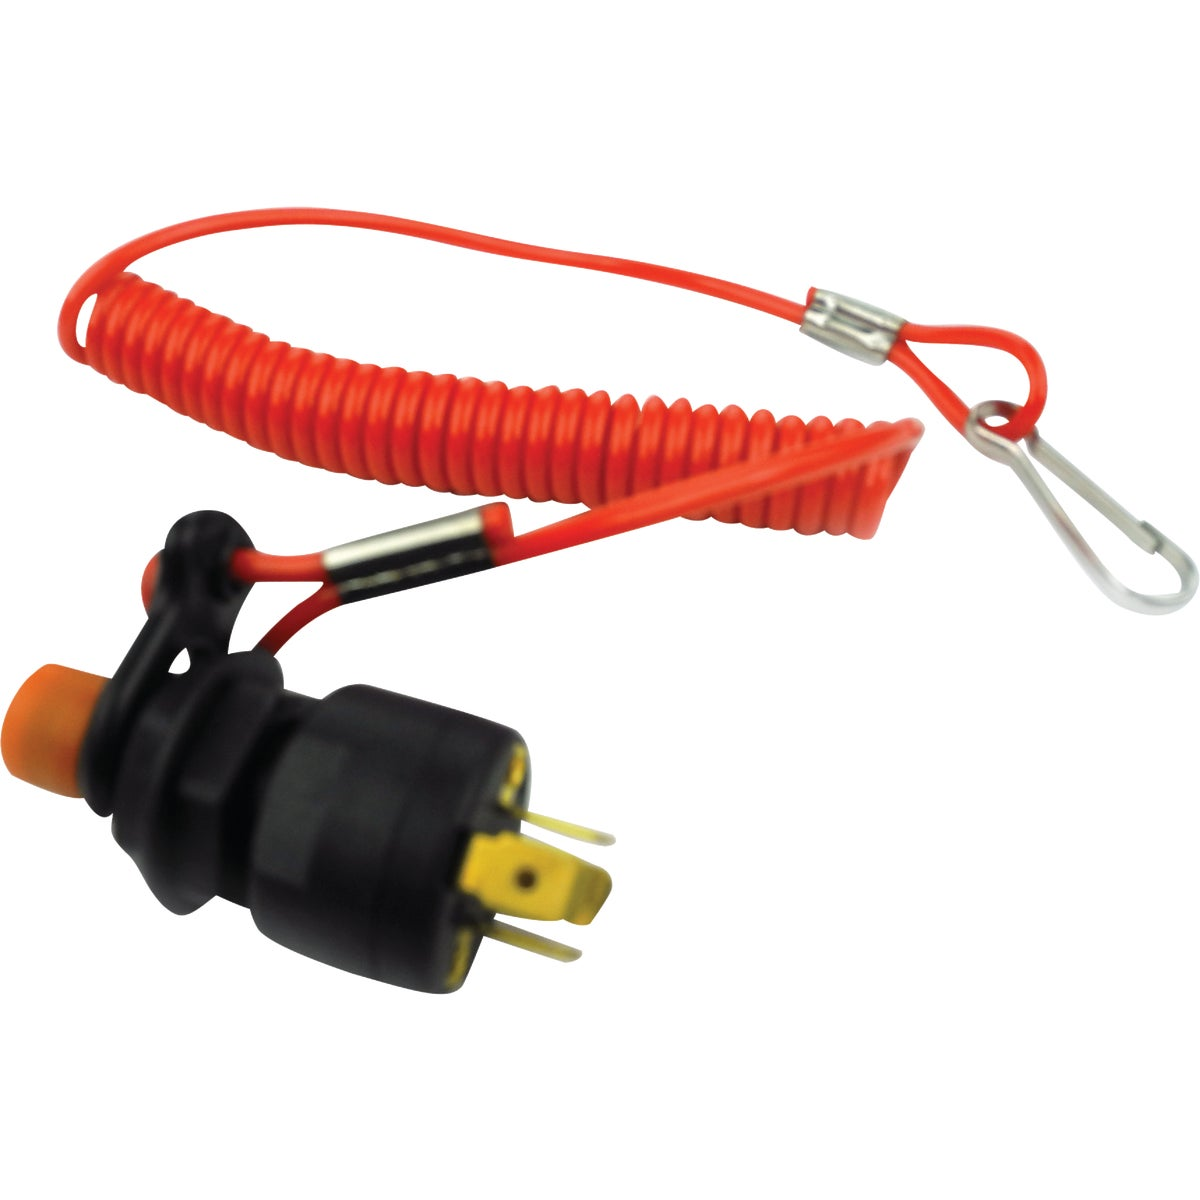 TETHER COIL KILL SWITCH - 11681 by Seachoice Prod